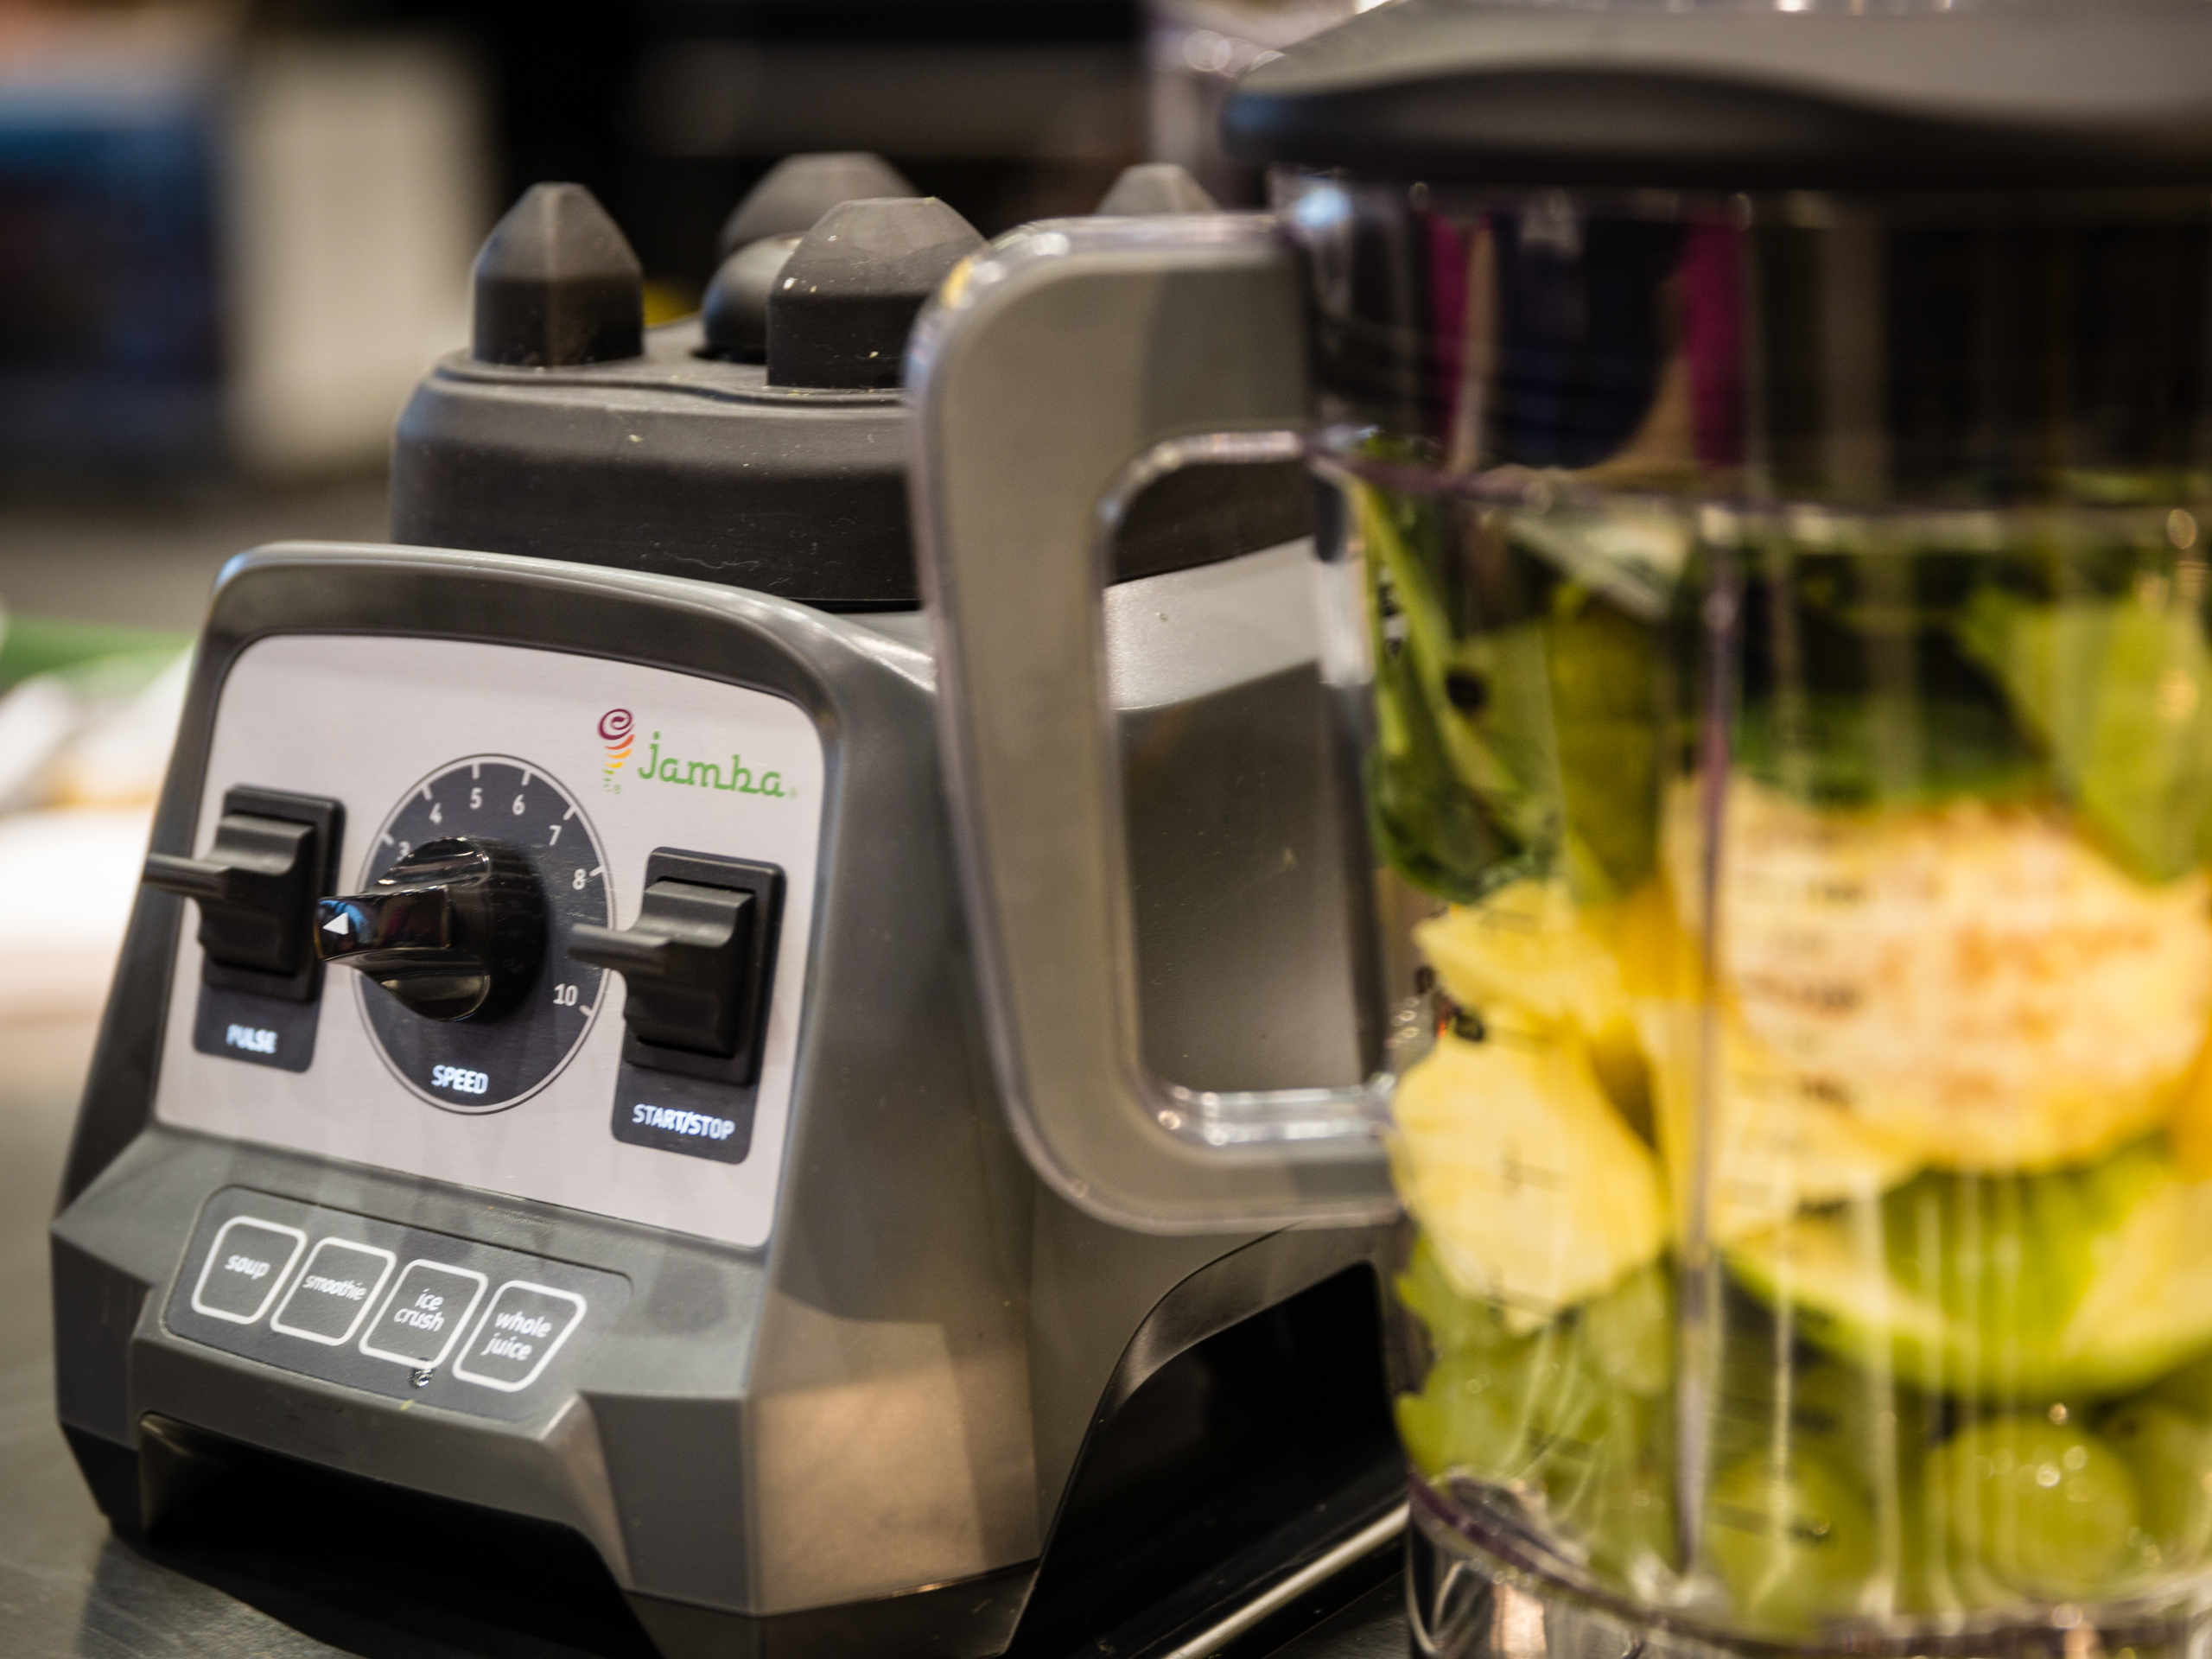 Jamba Juice and Hamilton Beach bring the smoothie store to your home - CNET